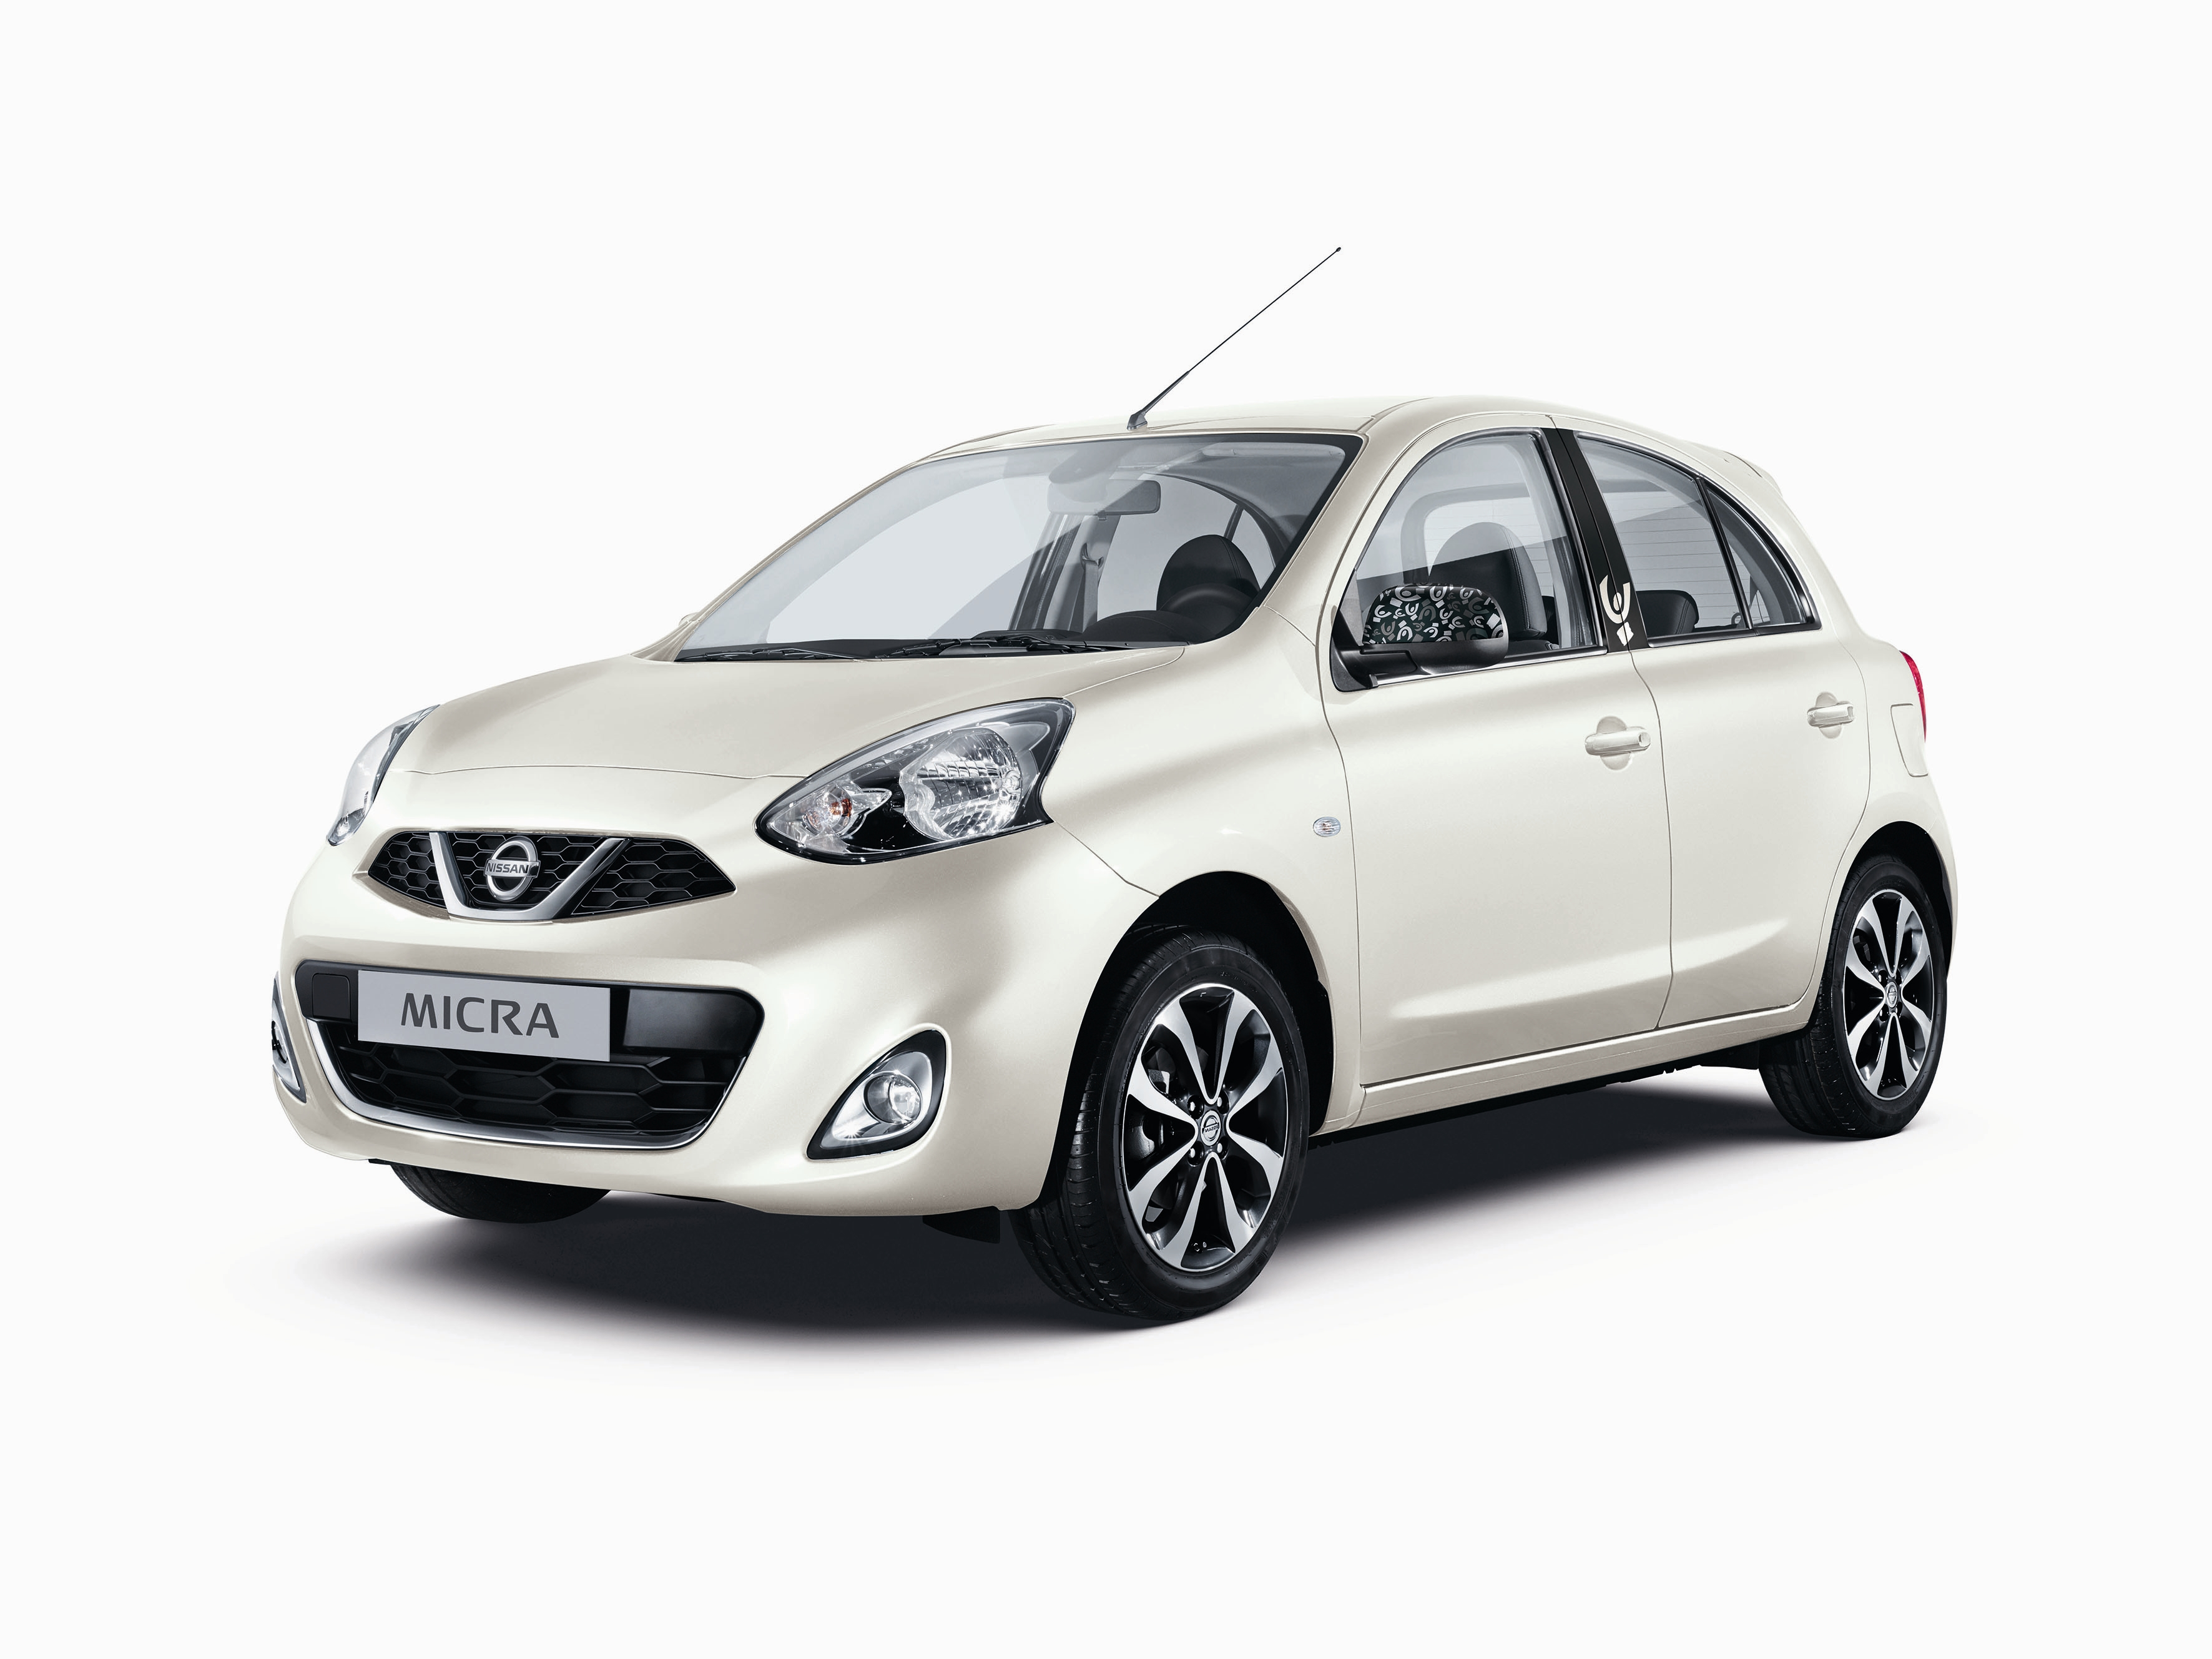 Nissan Micra FREDDY Limited Edition